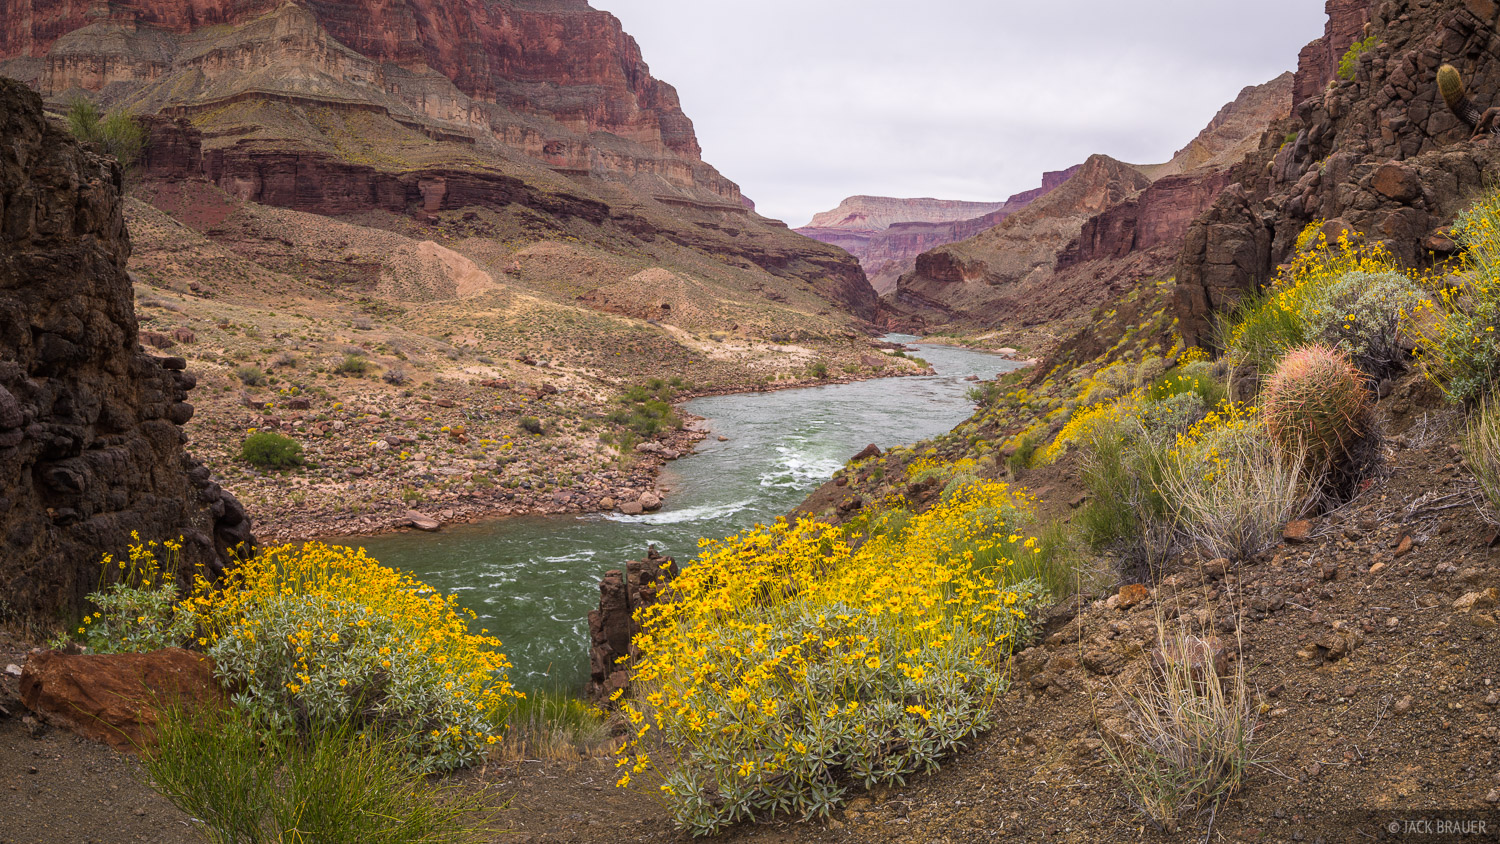 Arizona,Colorado River,Grand Canyon,wildflowers, photo